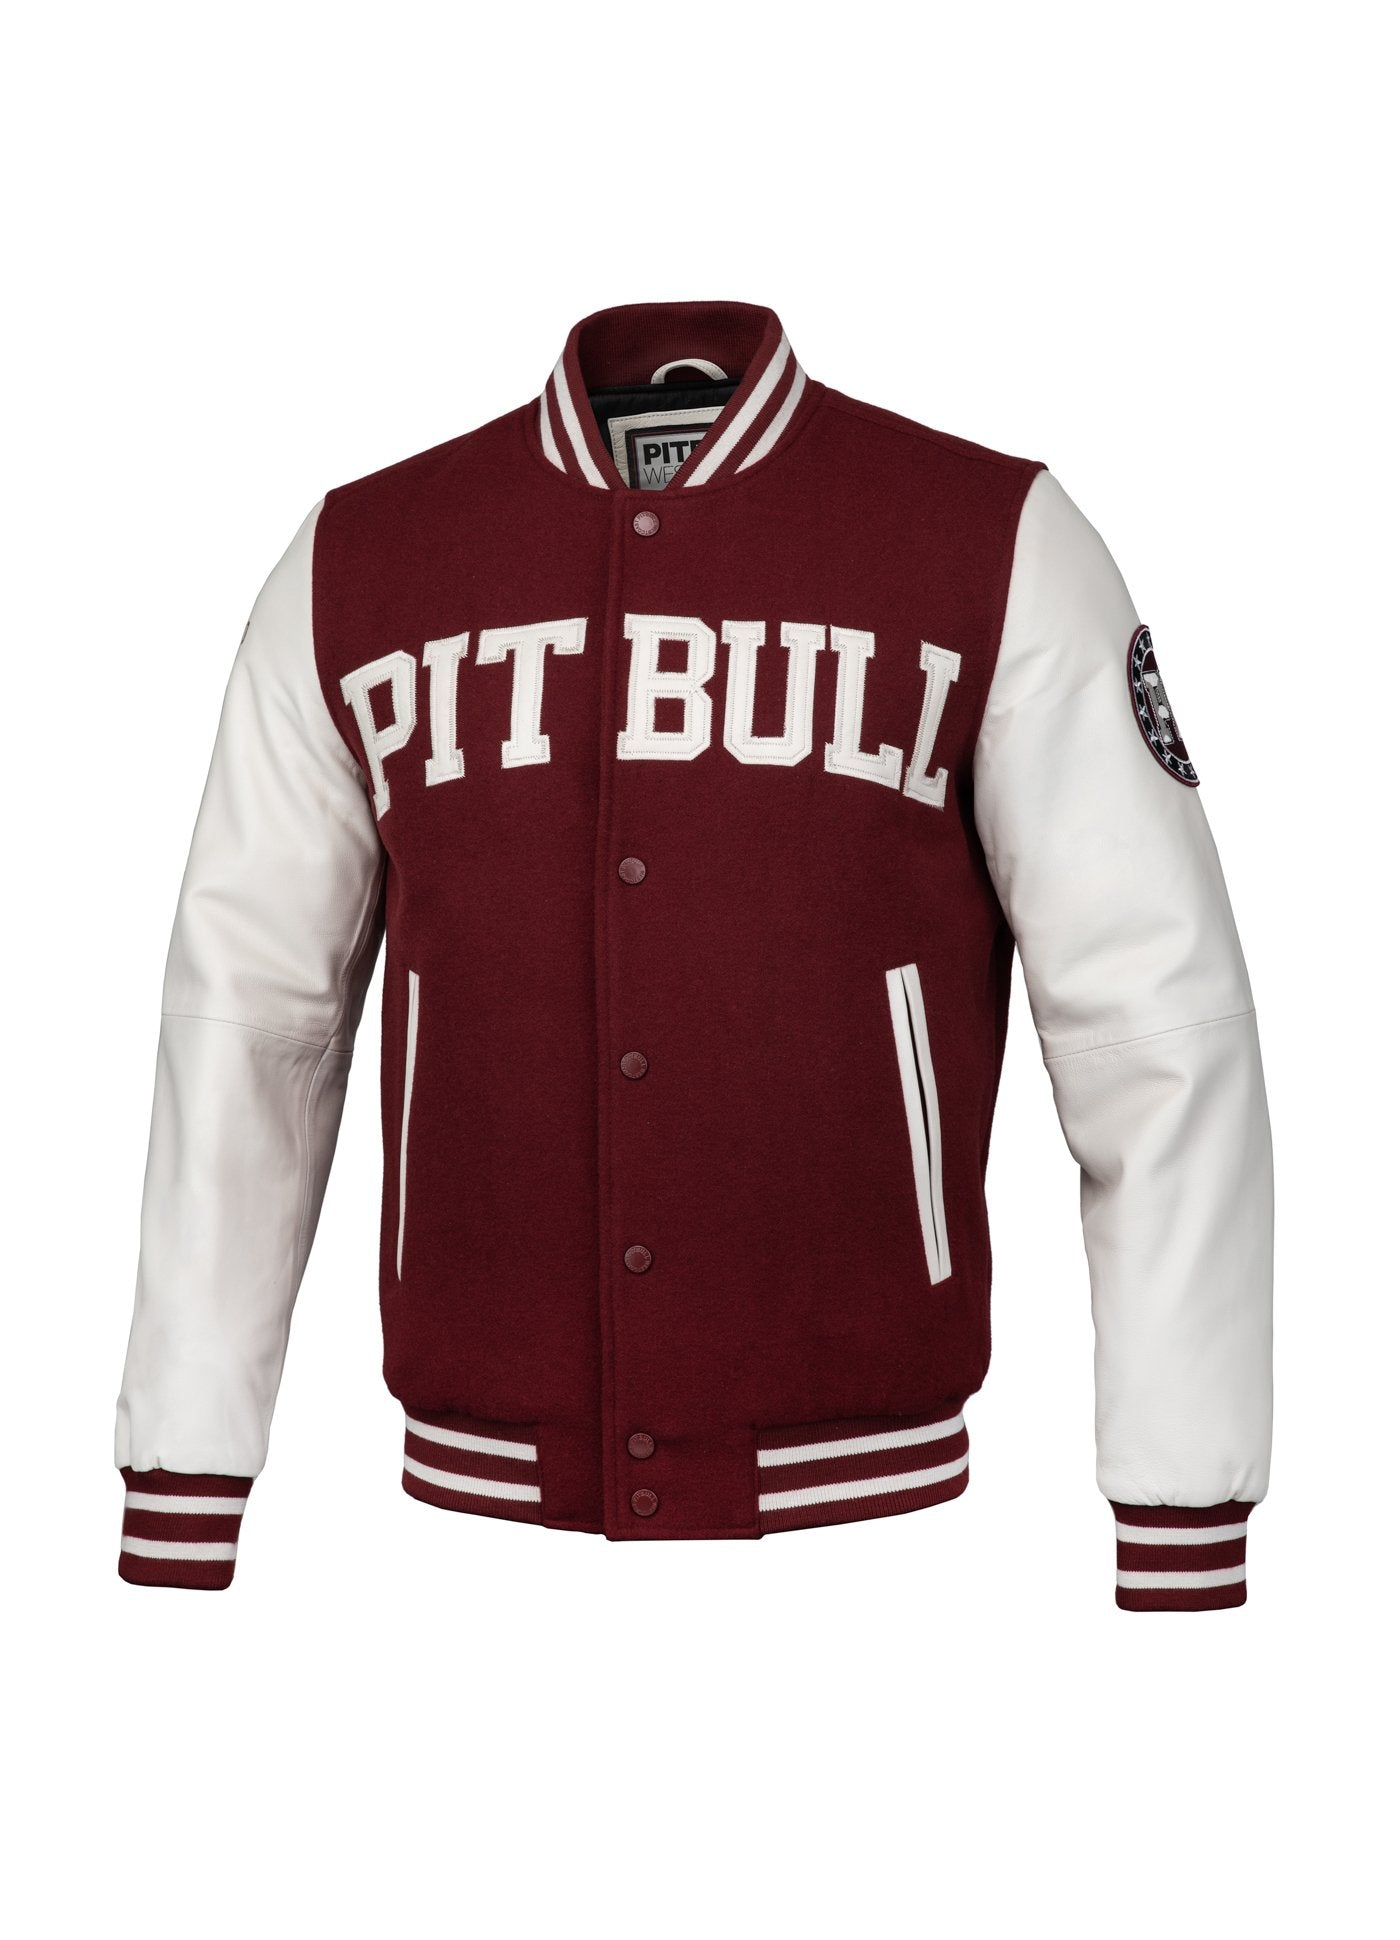 JACKET MELTON WILSON BURGUNDY - Pitbull West Coast U.S.A.